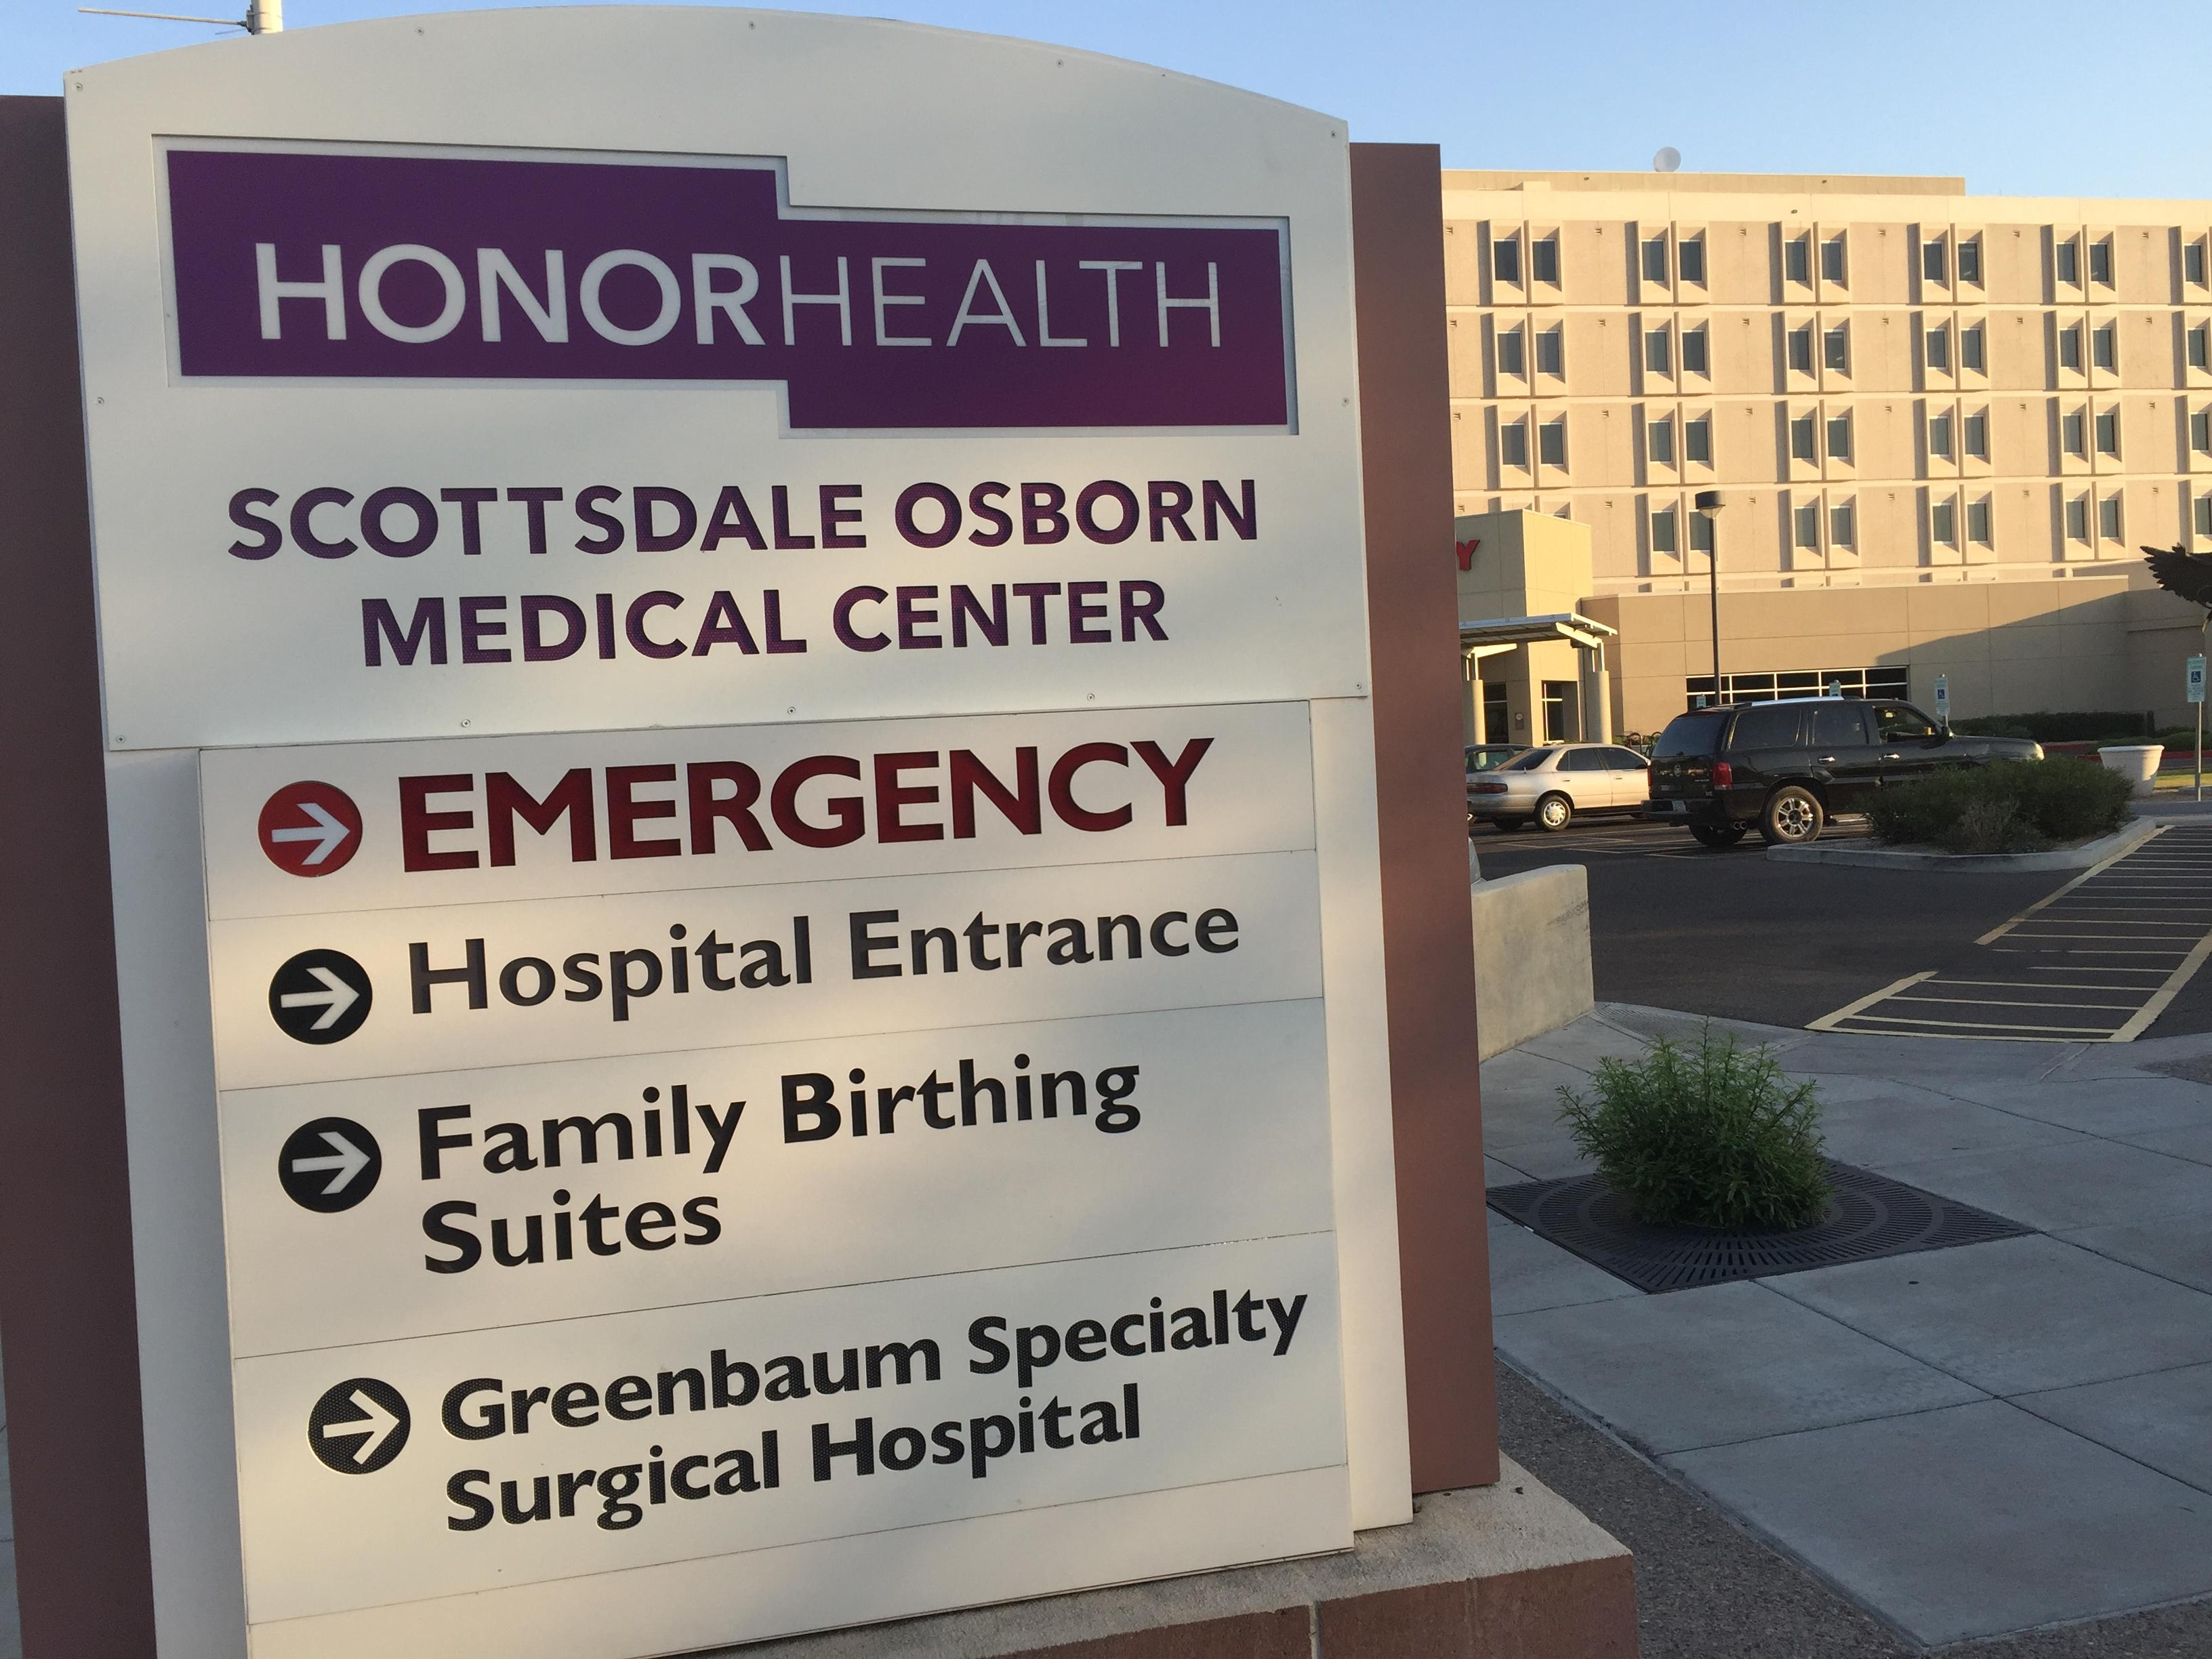 HonorHealth Scottsdale Osborn Medical Center